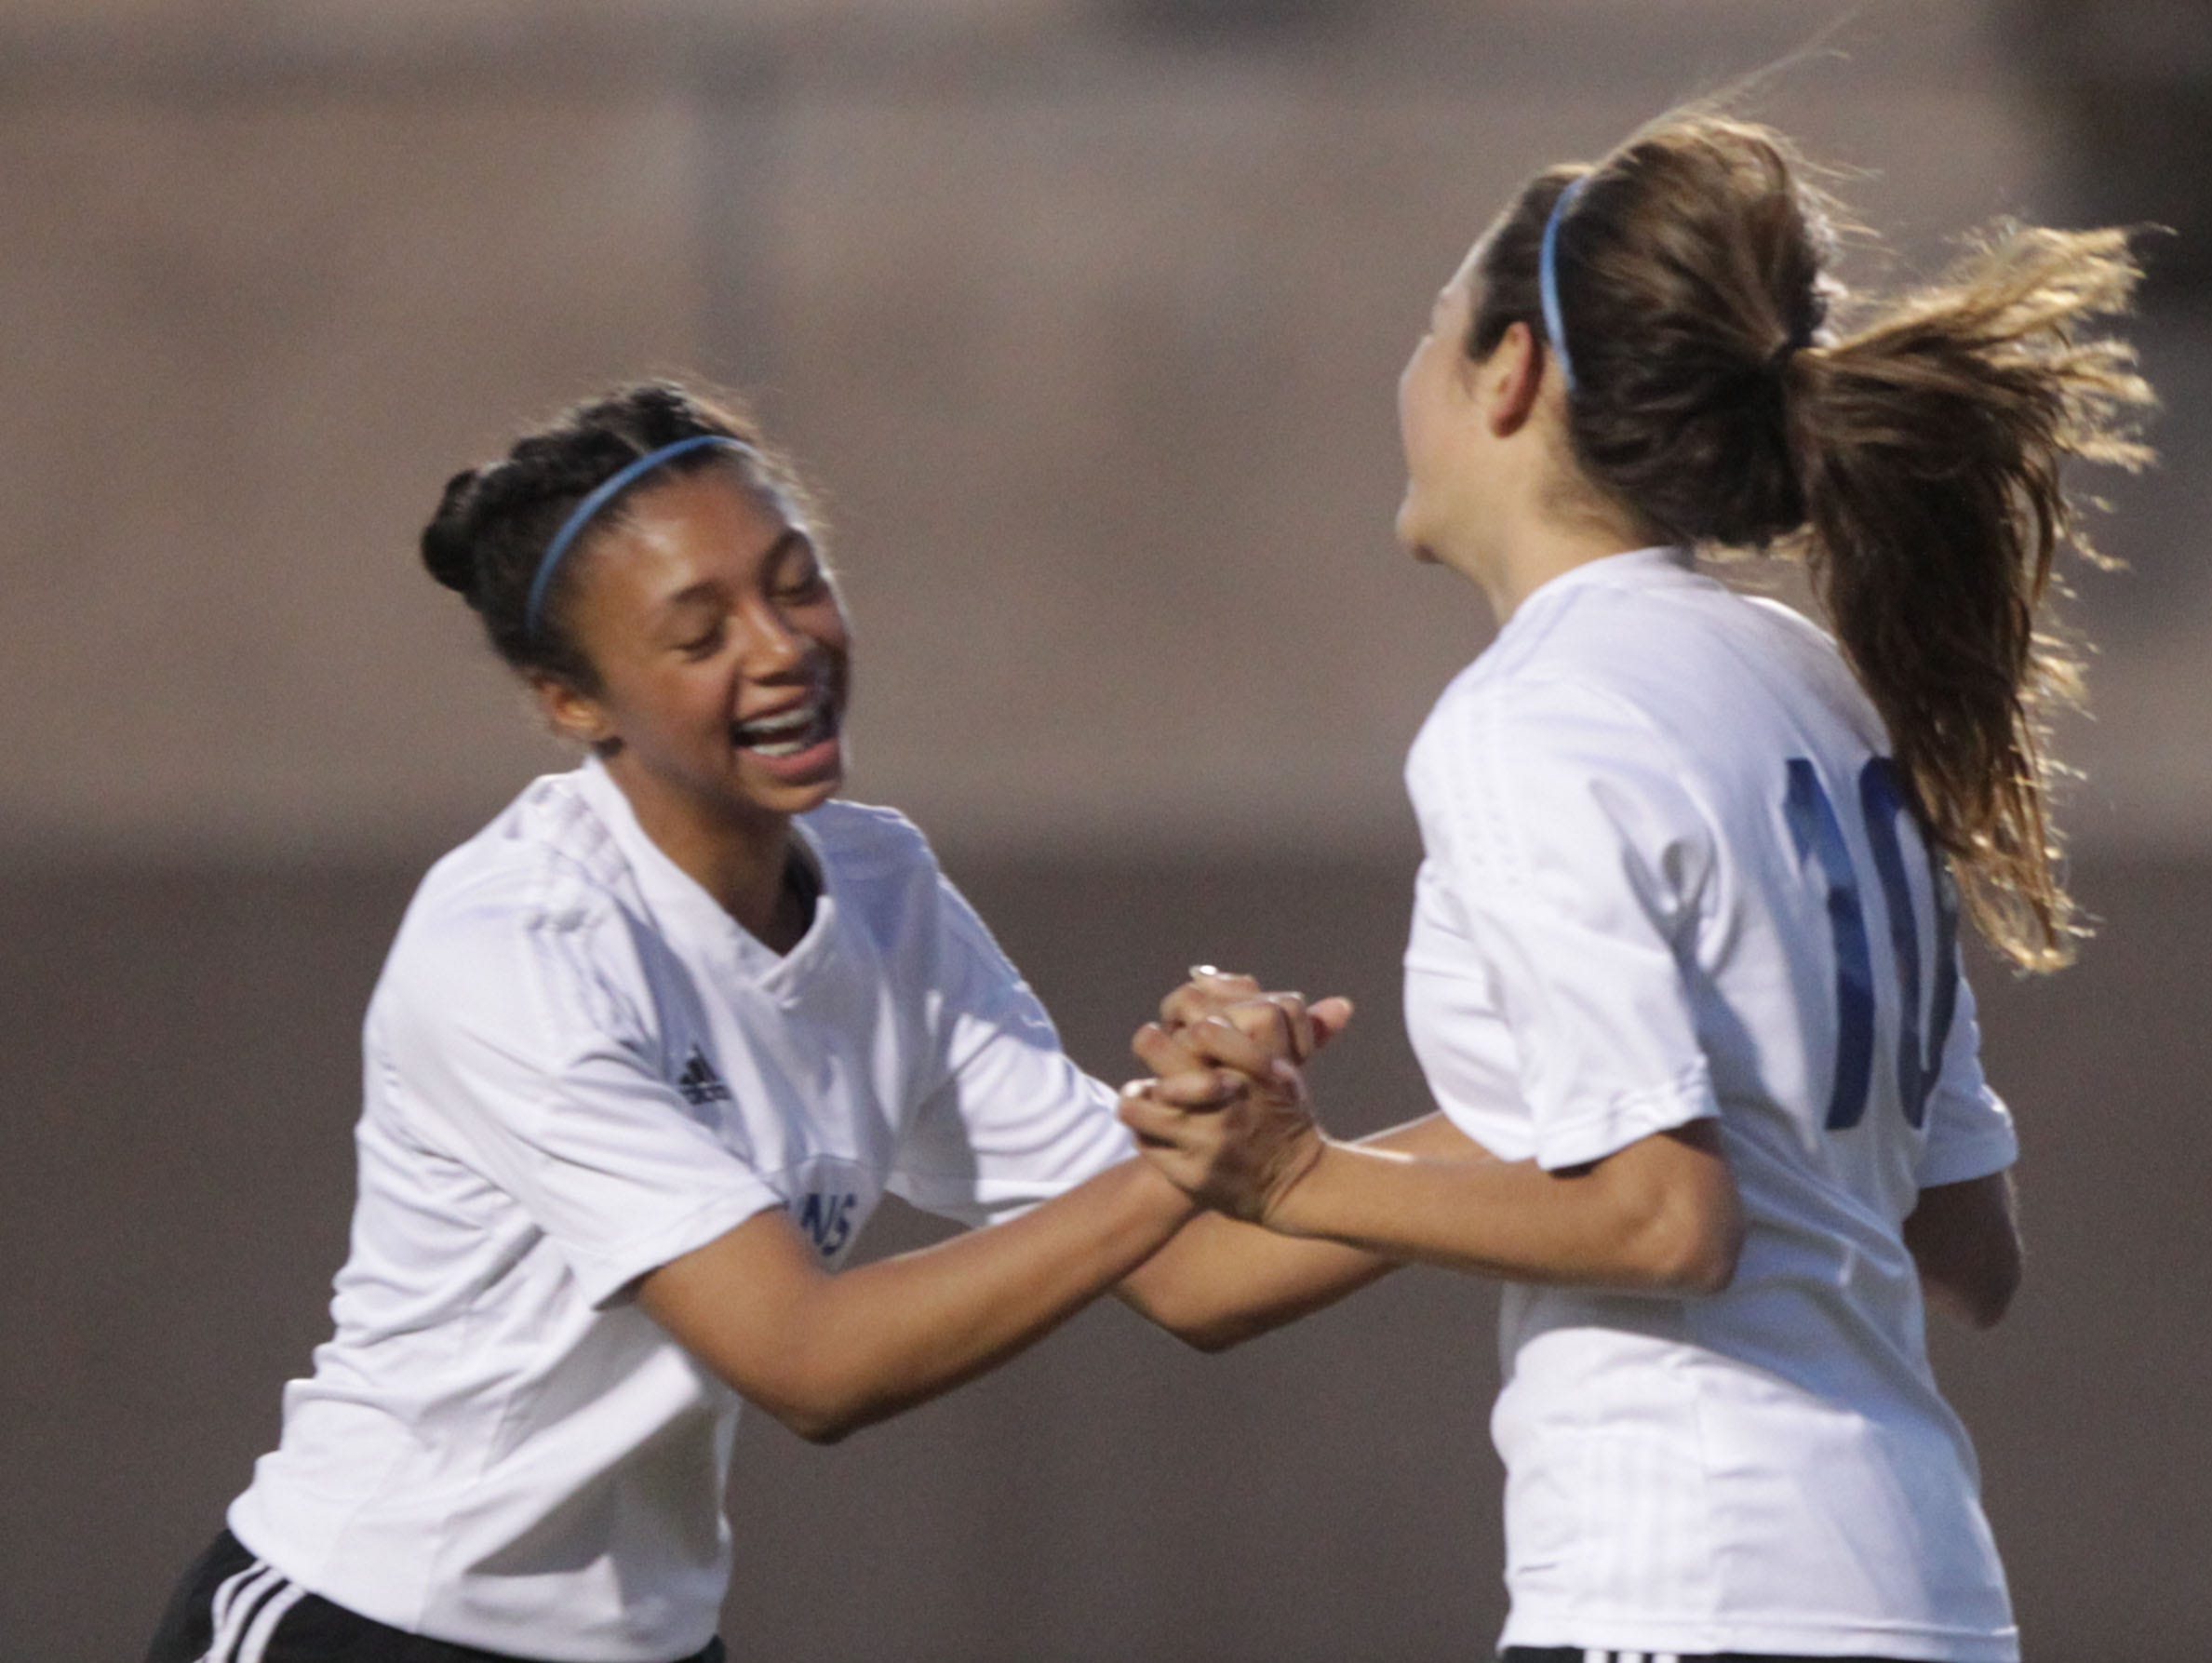 From left, Azalea Guanajuato congratulates Aylin Figueroa Uribe for scoring the third goal for Cathedral City High School during their game against Palm Desert High School on February 2, 2016.